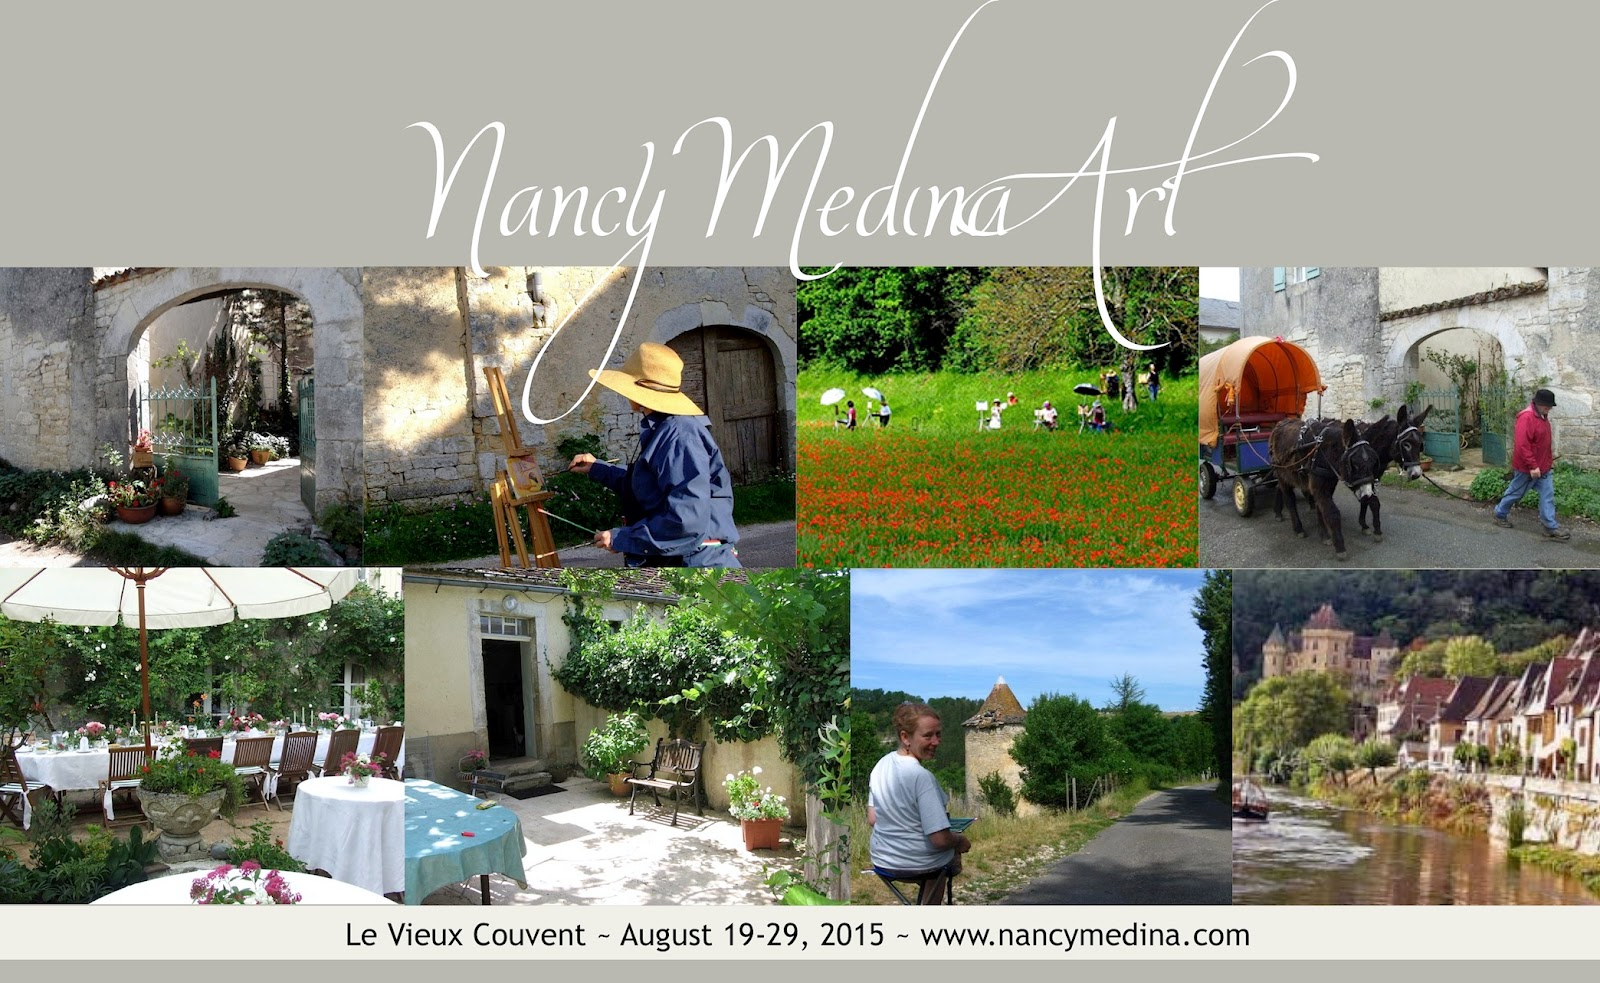 http://nancymedina.fineartstudioonline.com/page/4705/august-19-29-2015-le-vieux-couvent-southern-france-nancy-medina-art-llc